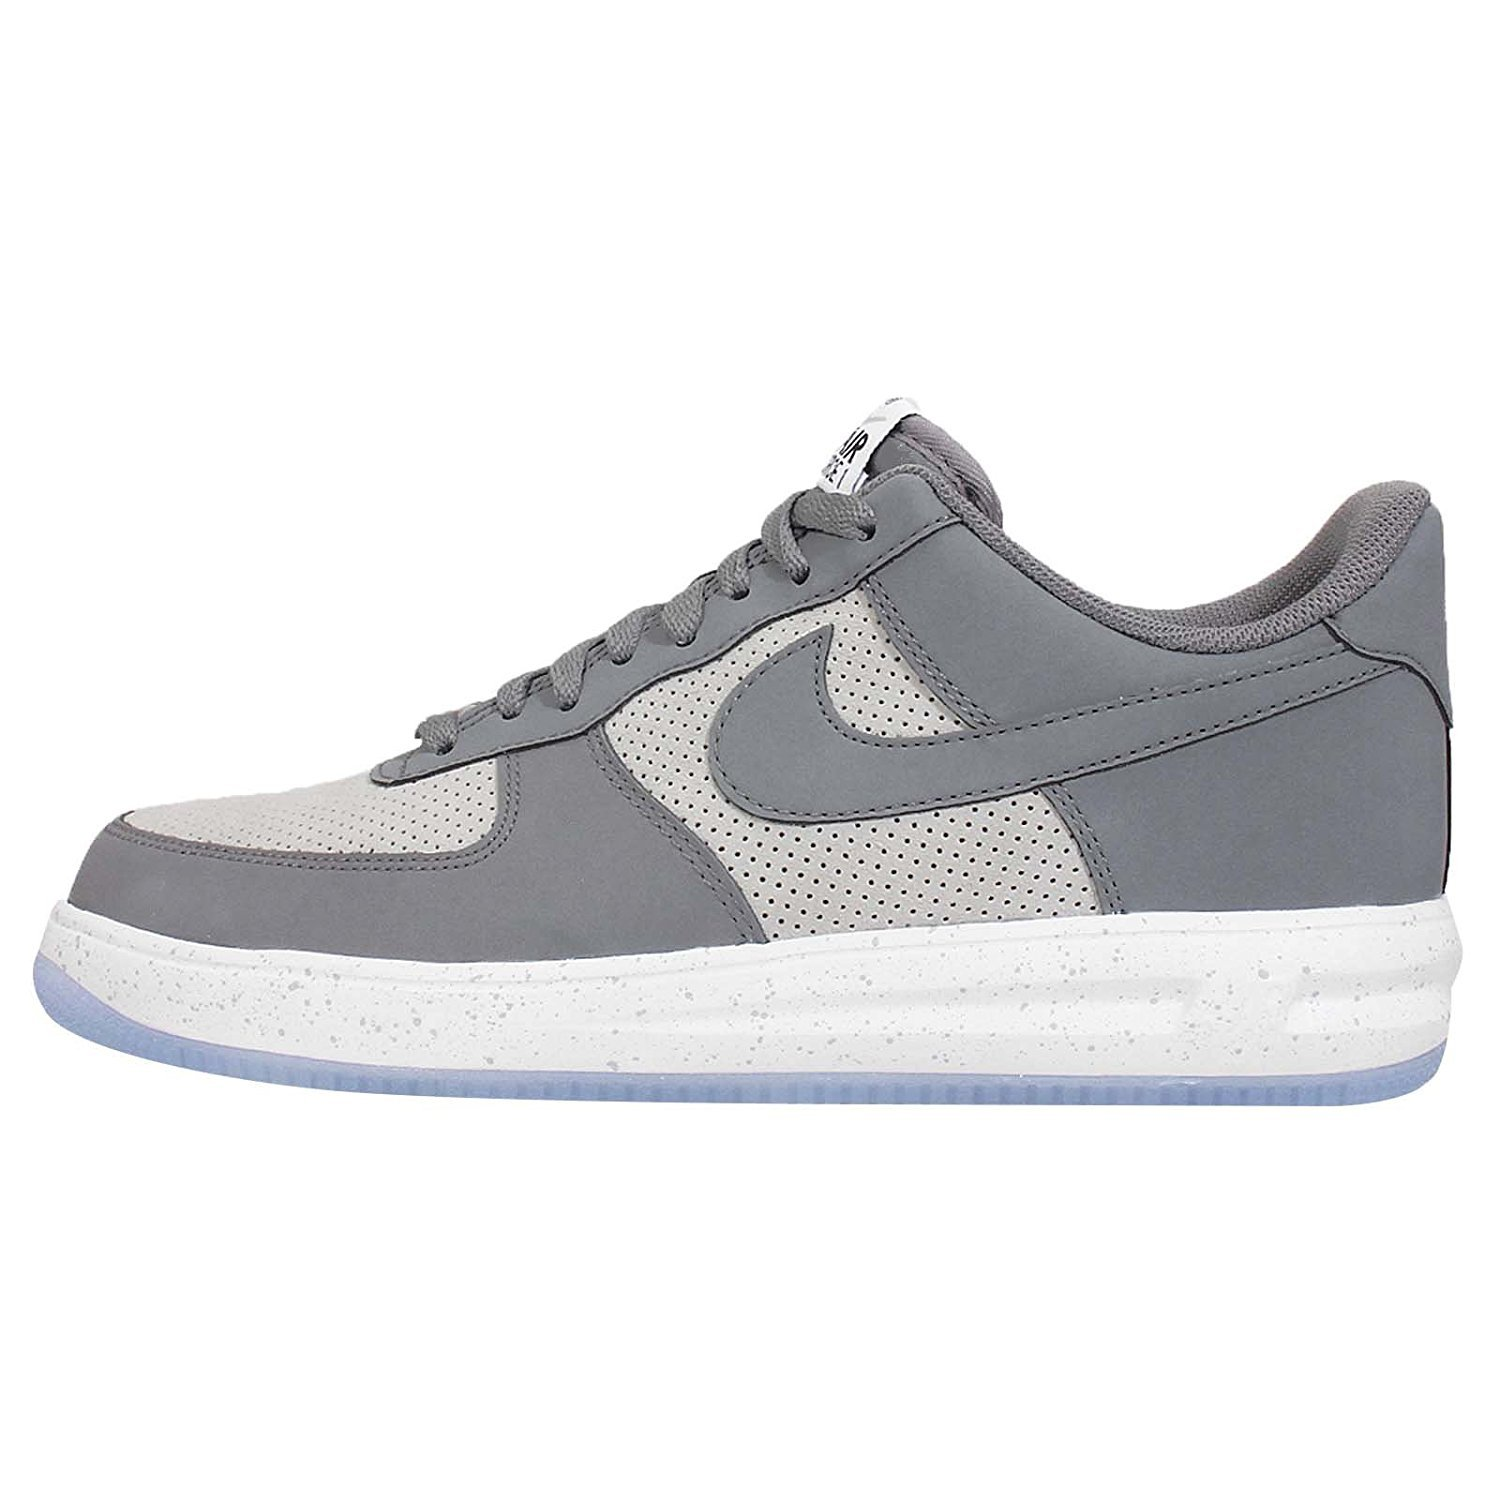 NIKE lunar Force 1 14 Mens Trainers 654256 Sneakers Shoes, K